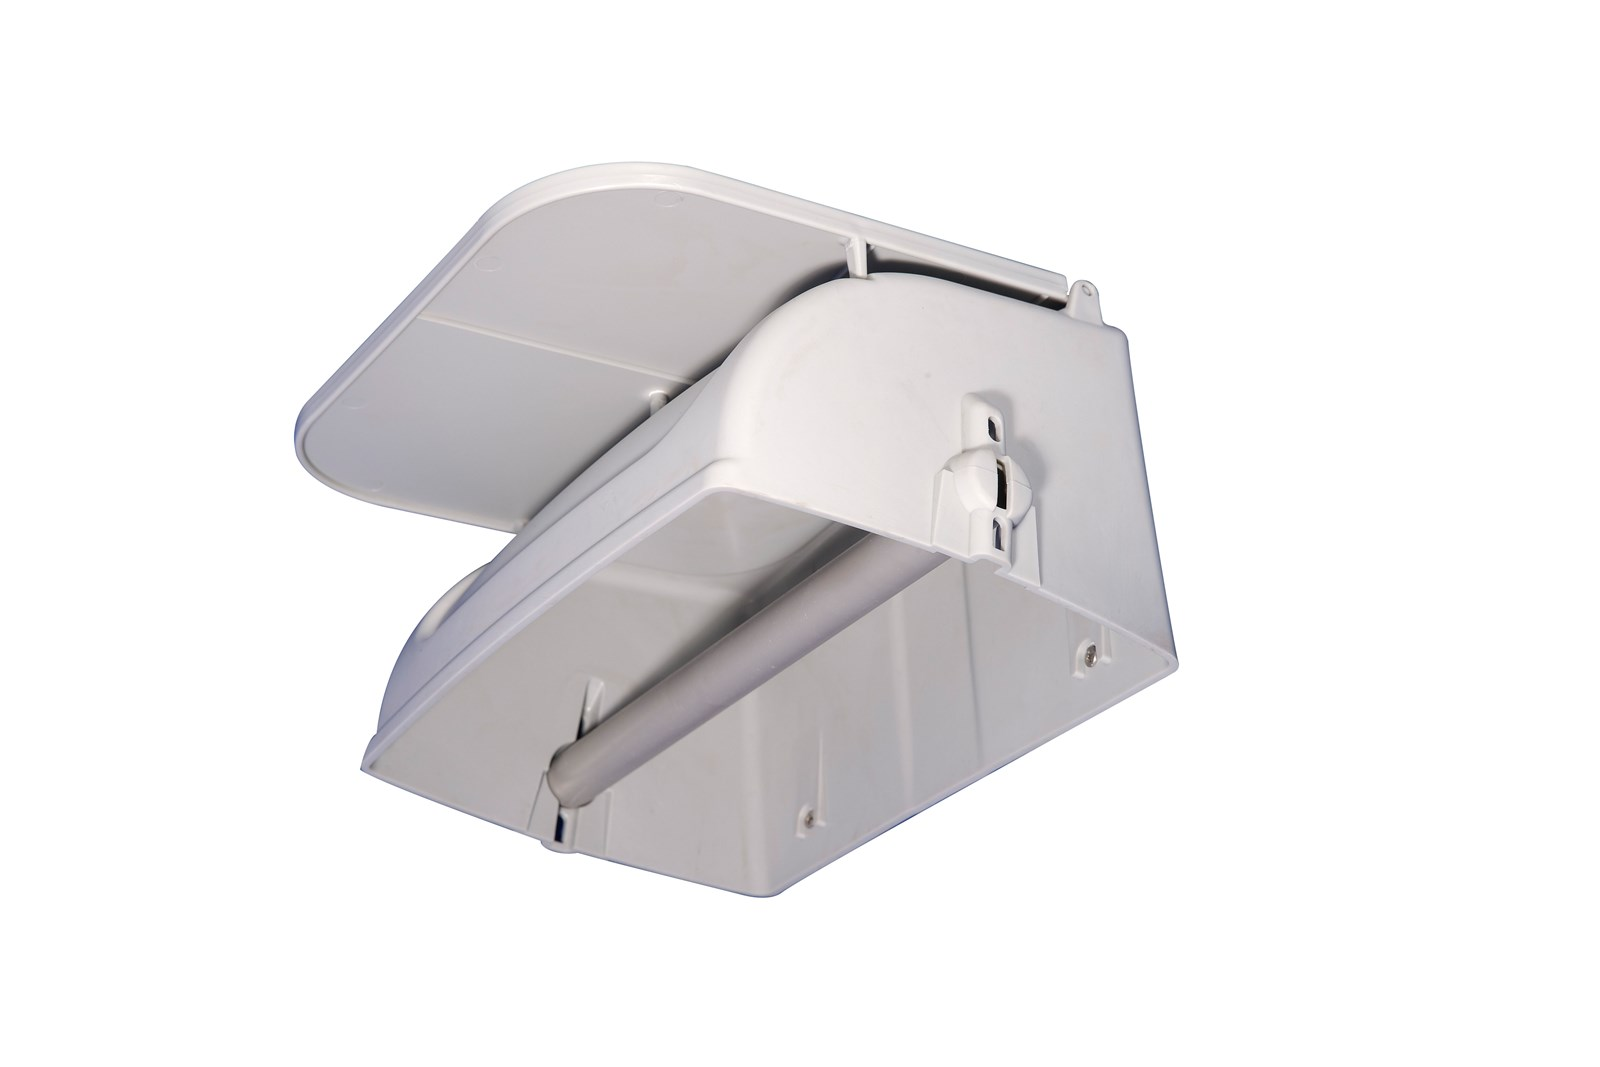 Wall Mounted Toilet Paper Rollers and Cloth Tray Serial No G313